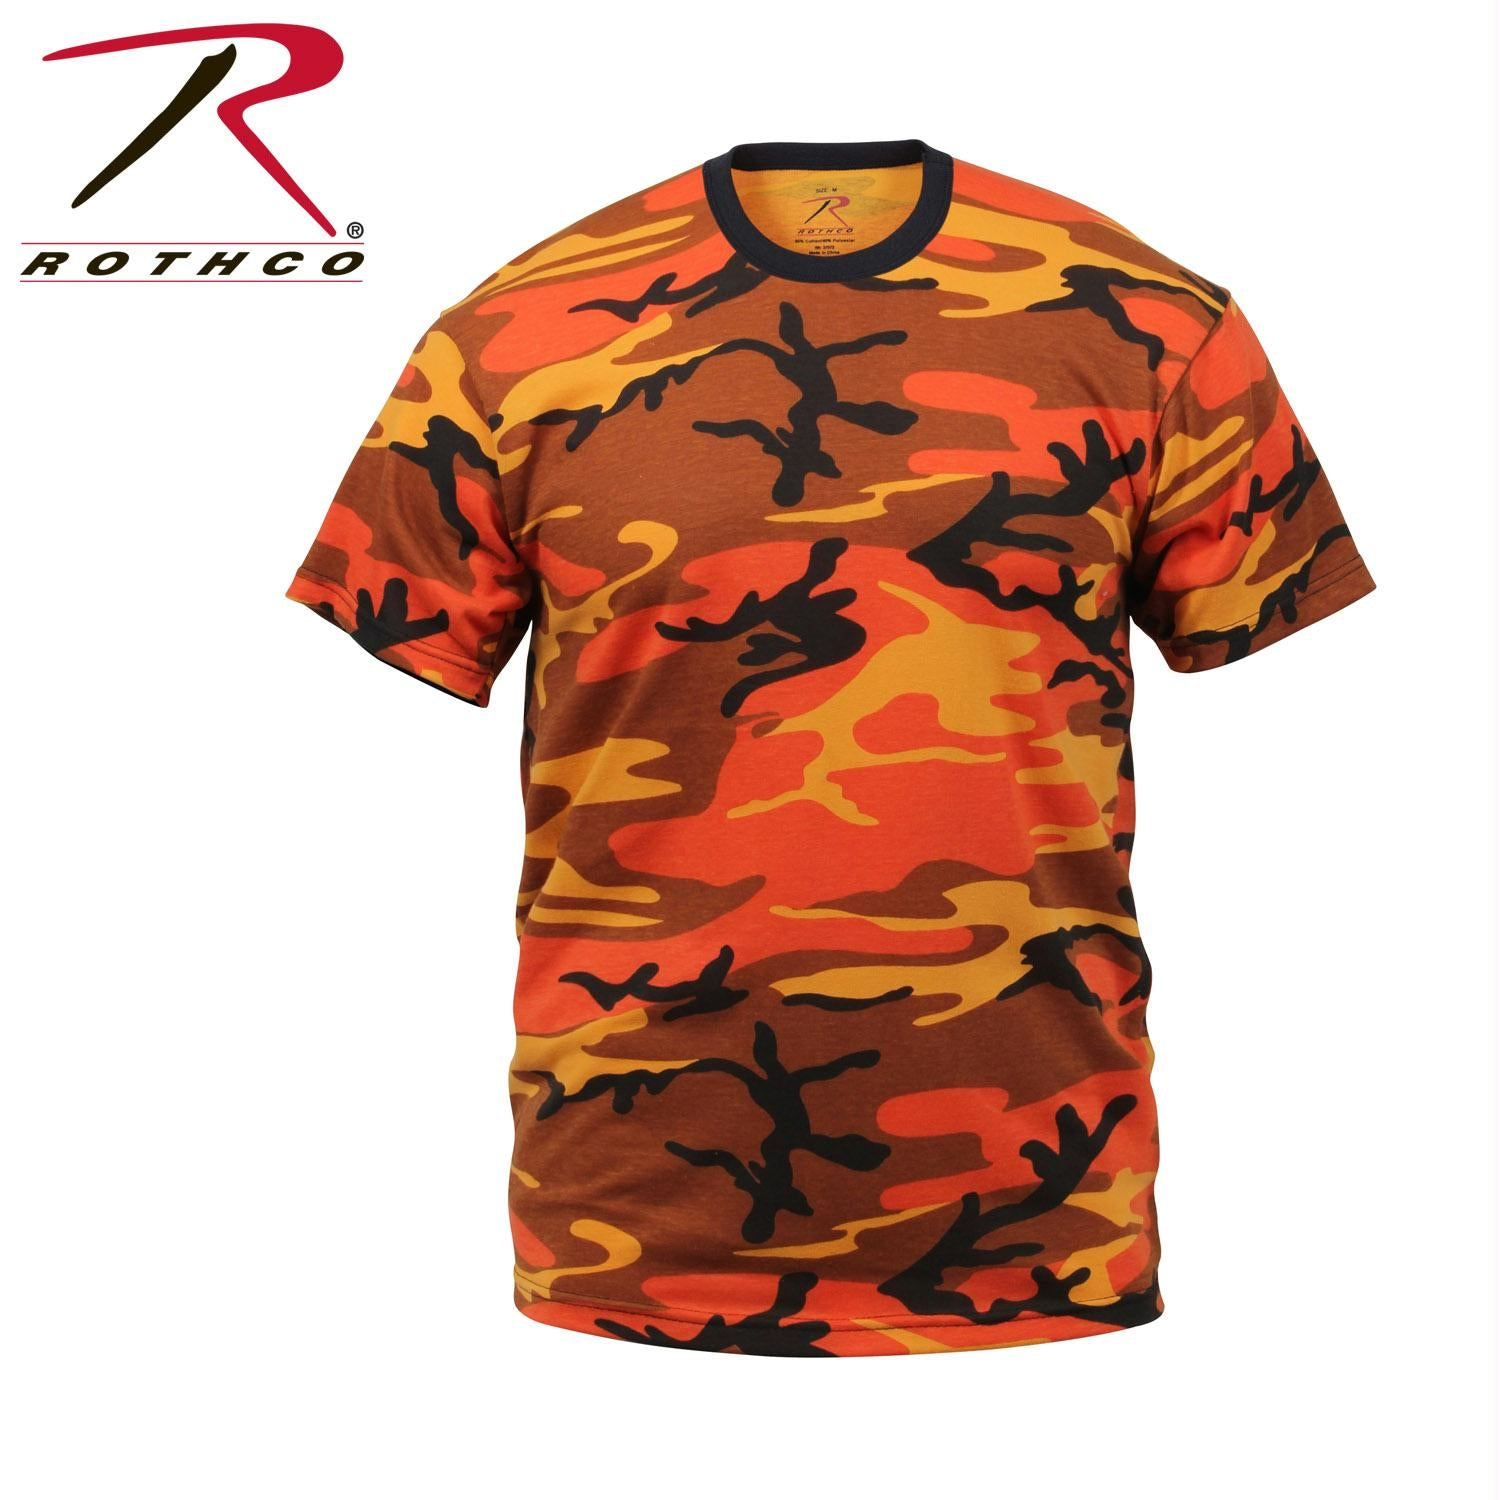 Mens Camouflage T-Shirt Military Camo Crewneck Short Sleeve Tee - Savage Orange Camo / L